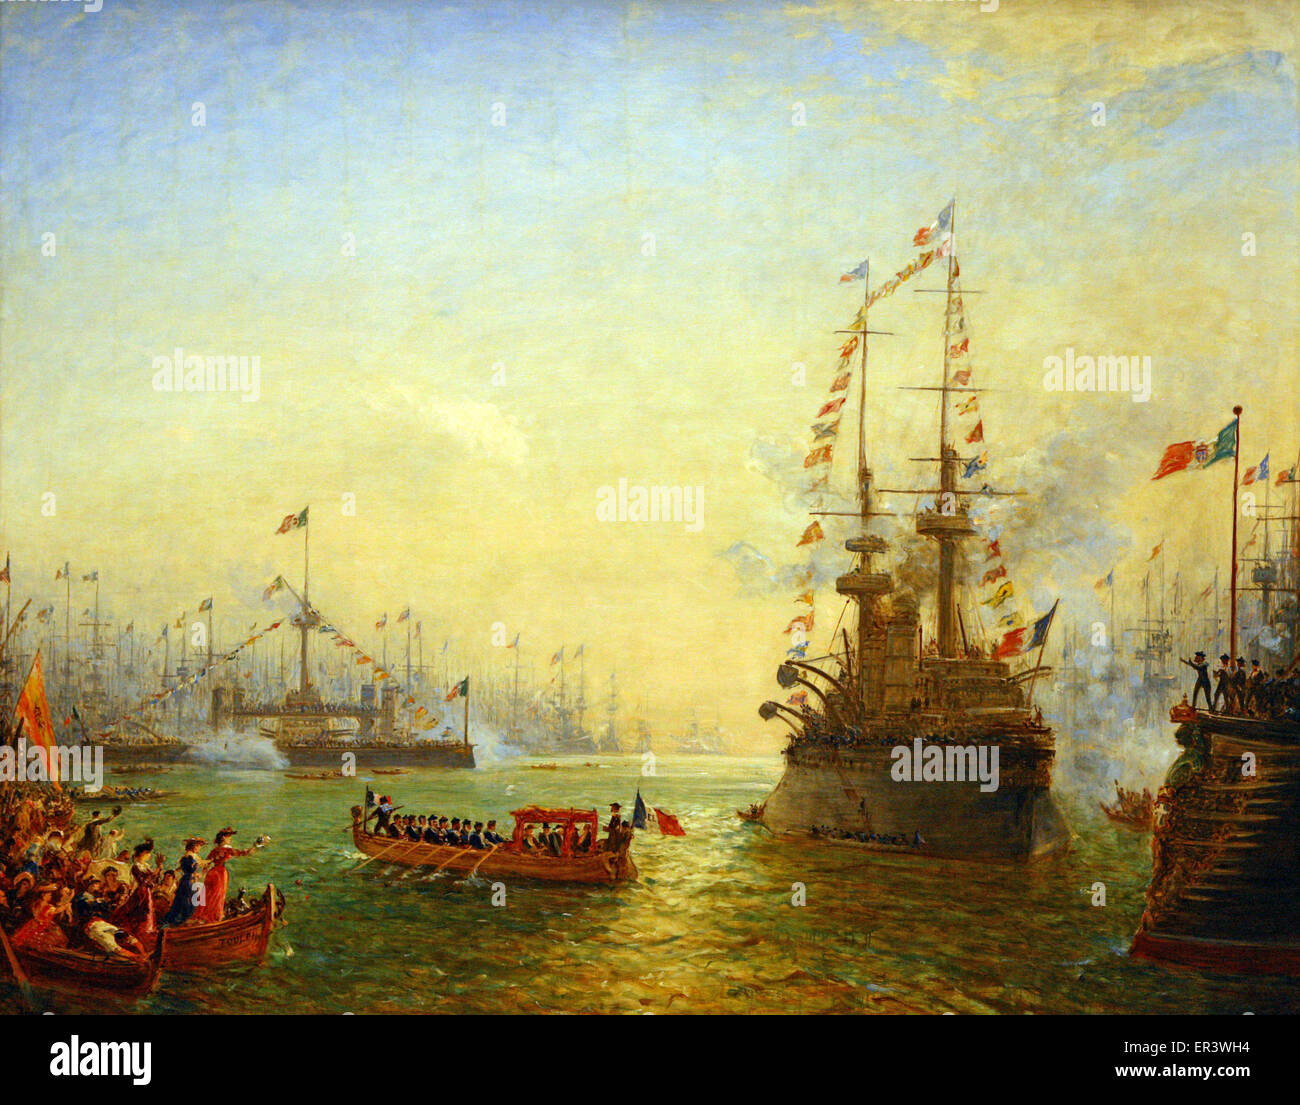 The visit of President Loubet to the french and italian ships at Toulon in 1901 - Stock Image